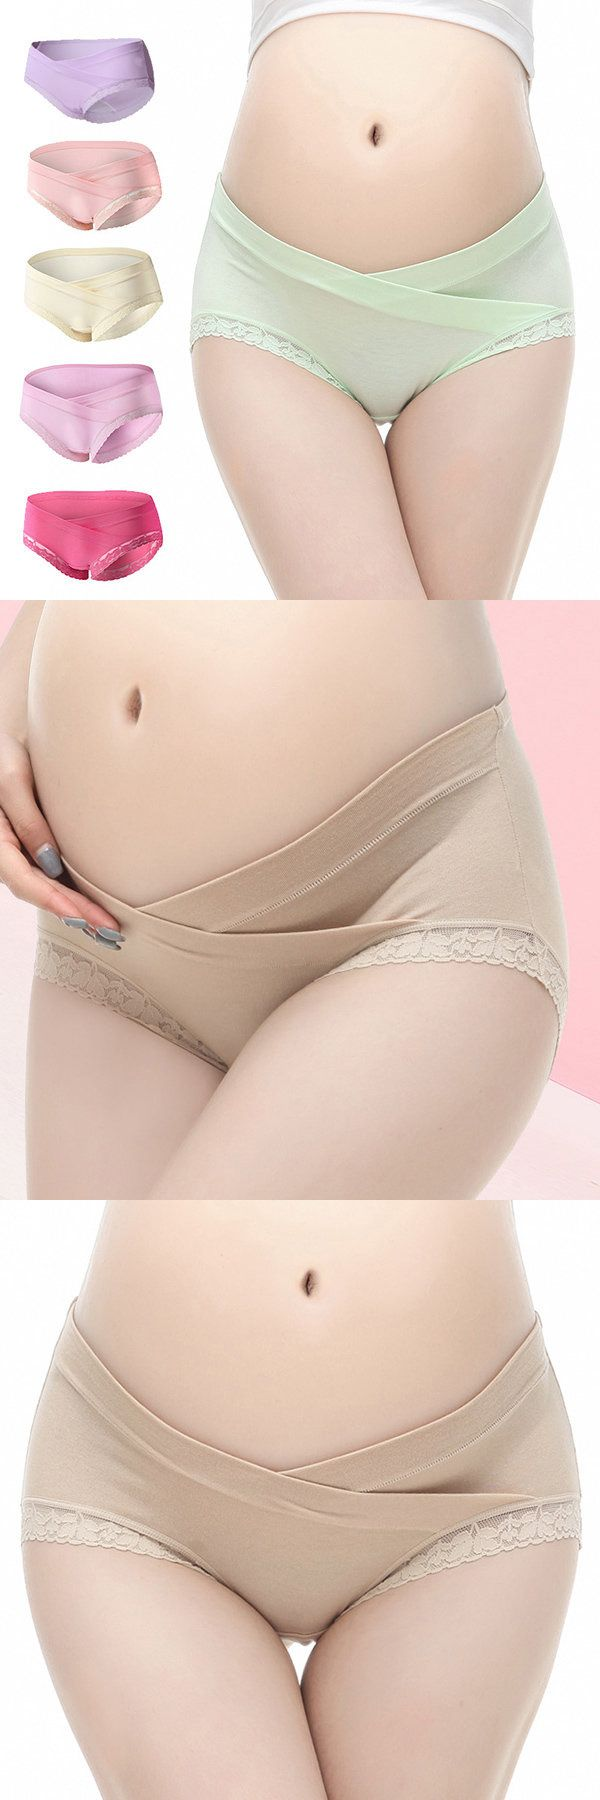 cotton support hip-lifting antibacterial seamfree breathable